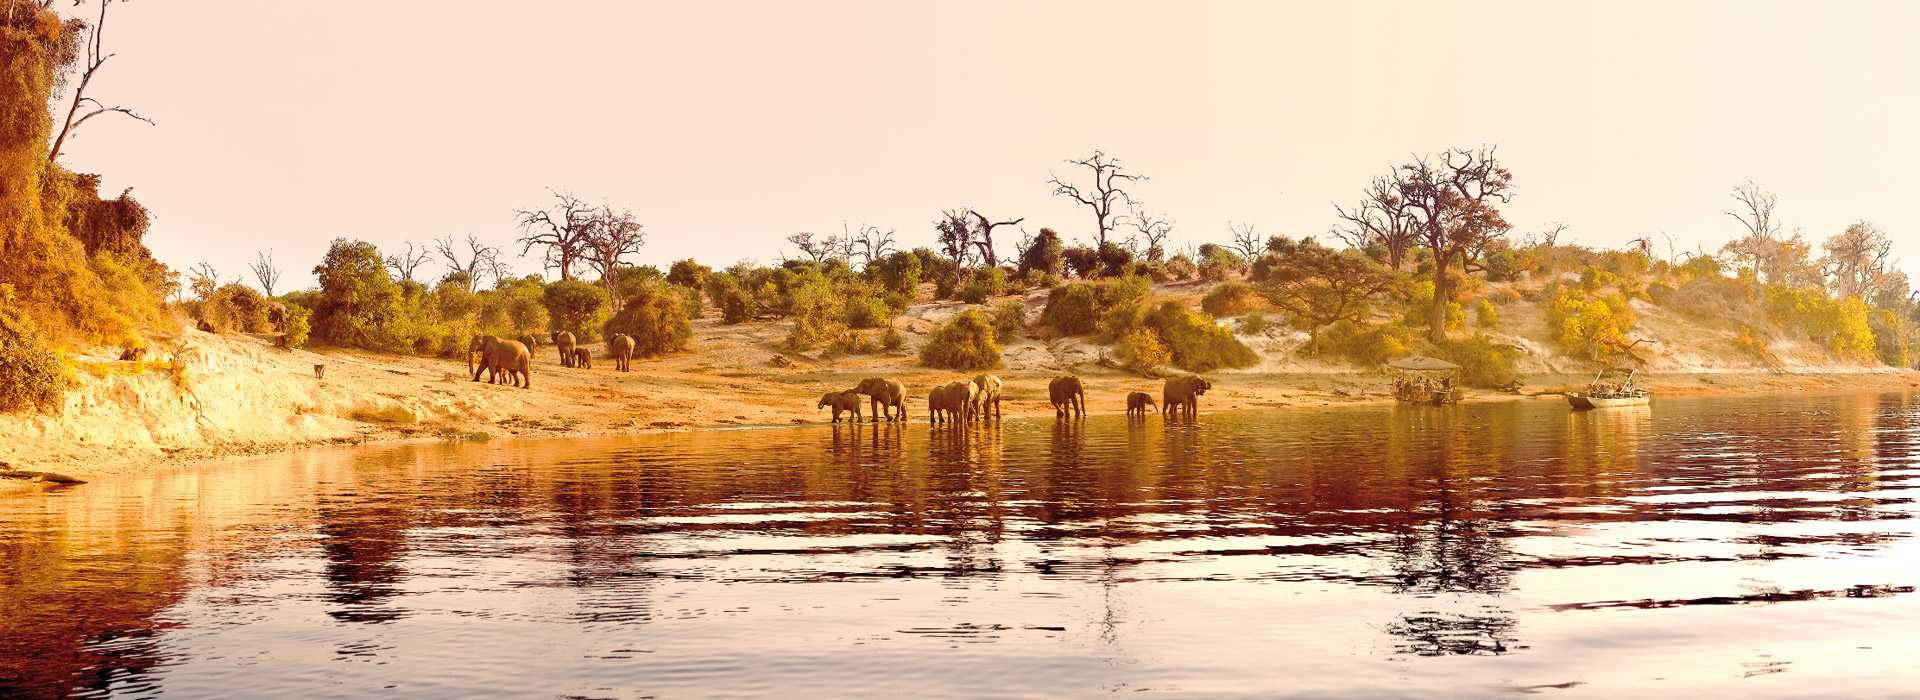 Elephants By The Chobe River At Sunset